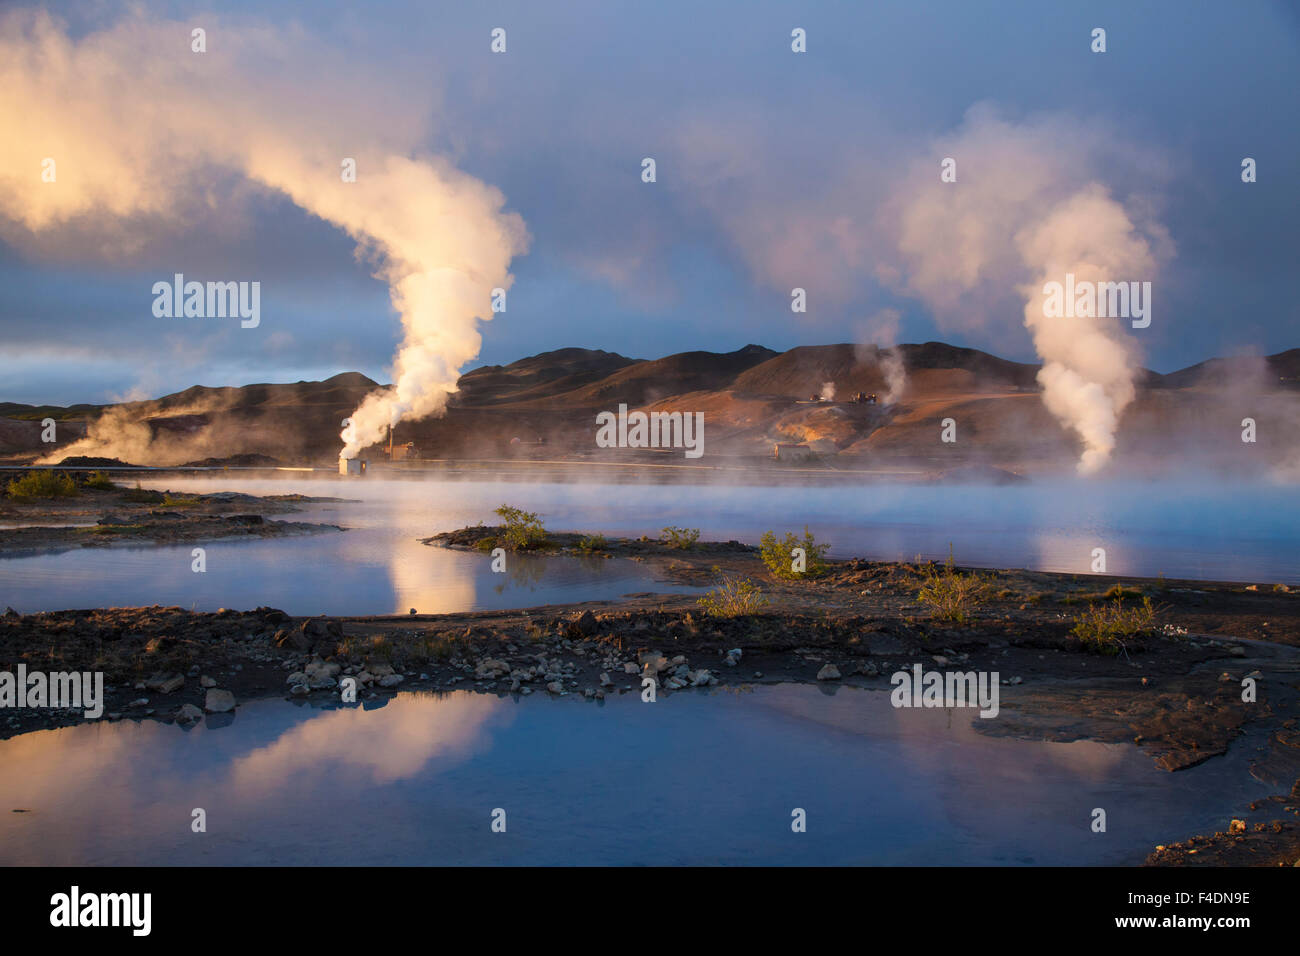 Sunset light over Bjarnarflag geothermal power station, Myvatn, Nordhurland Eystra, Iceland. - Stock Image